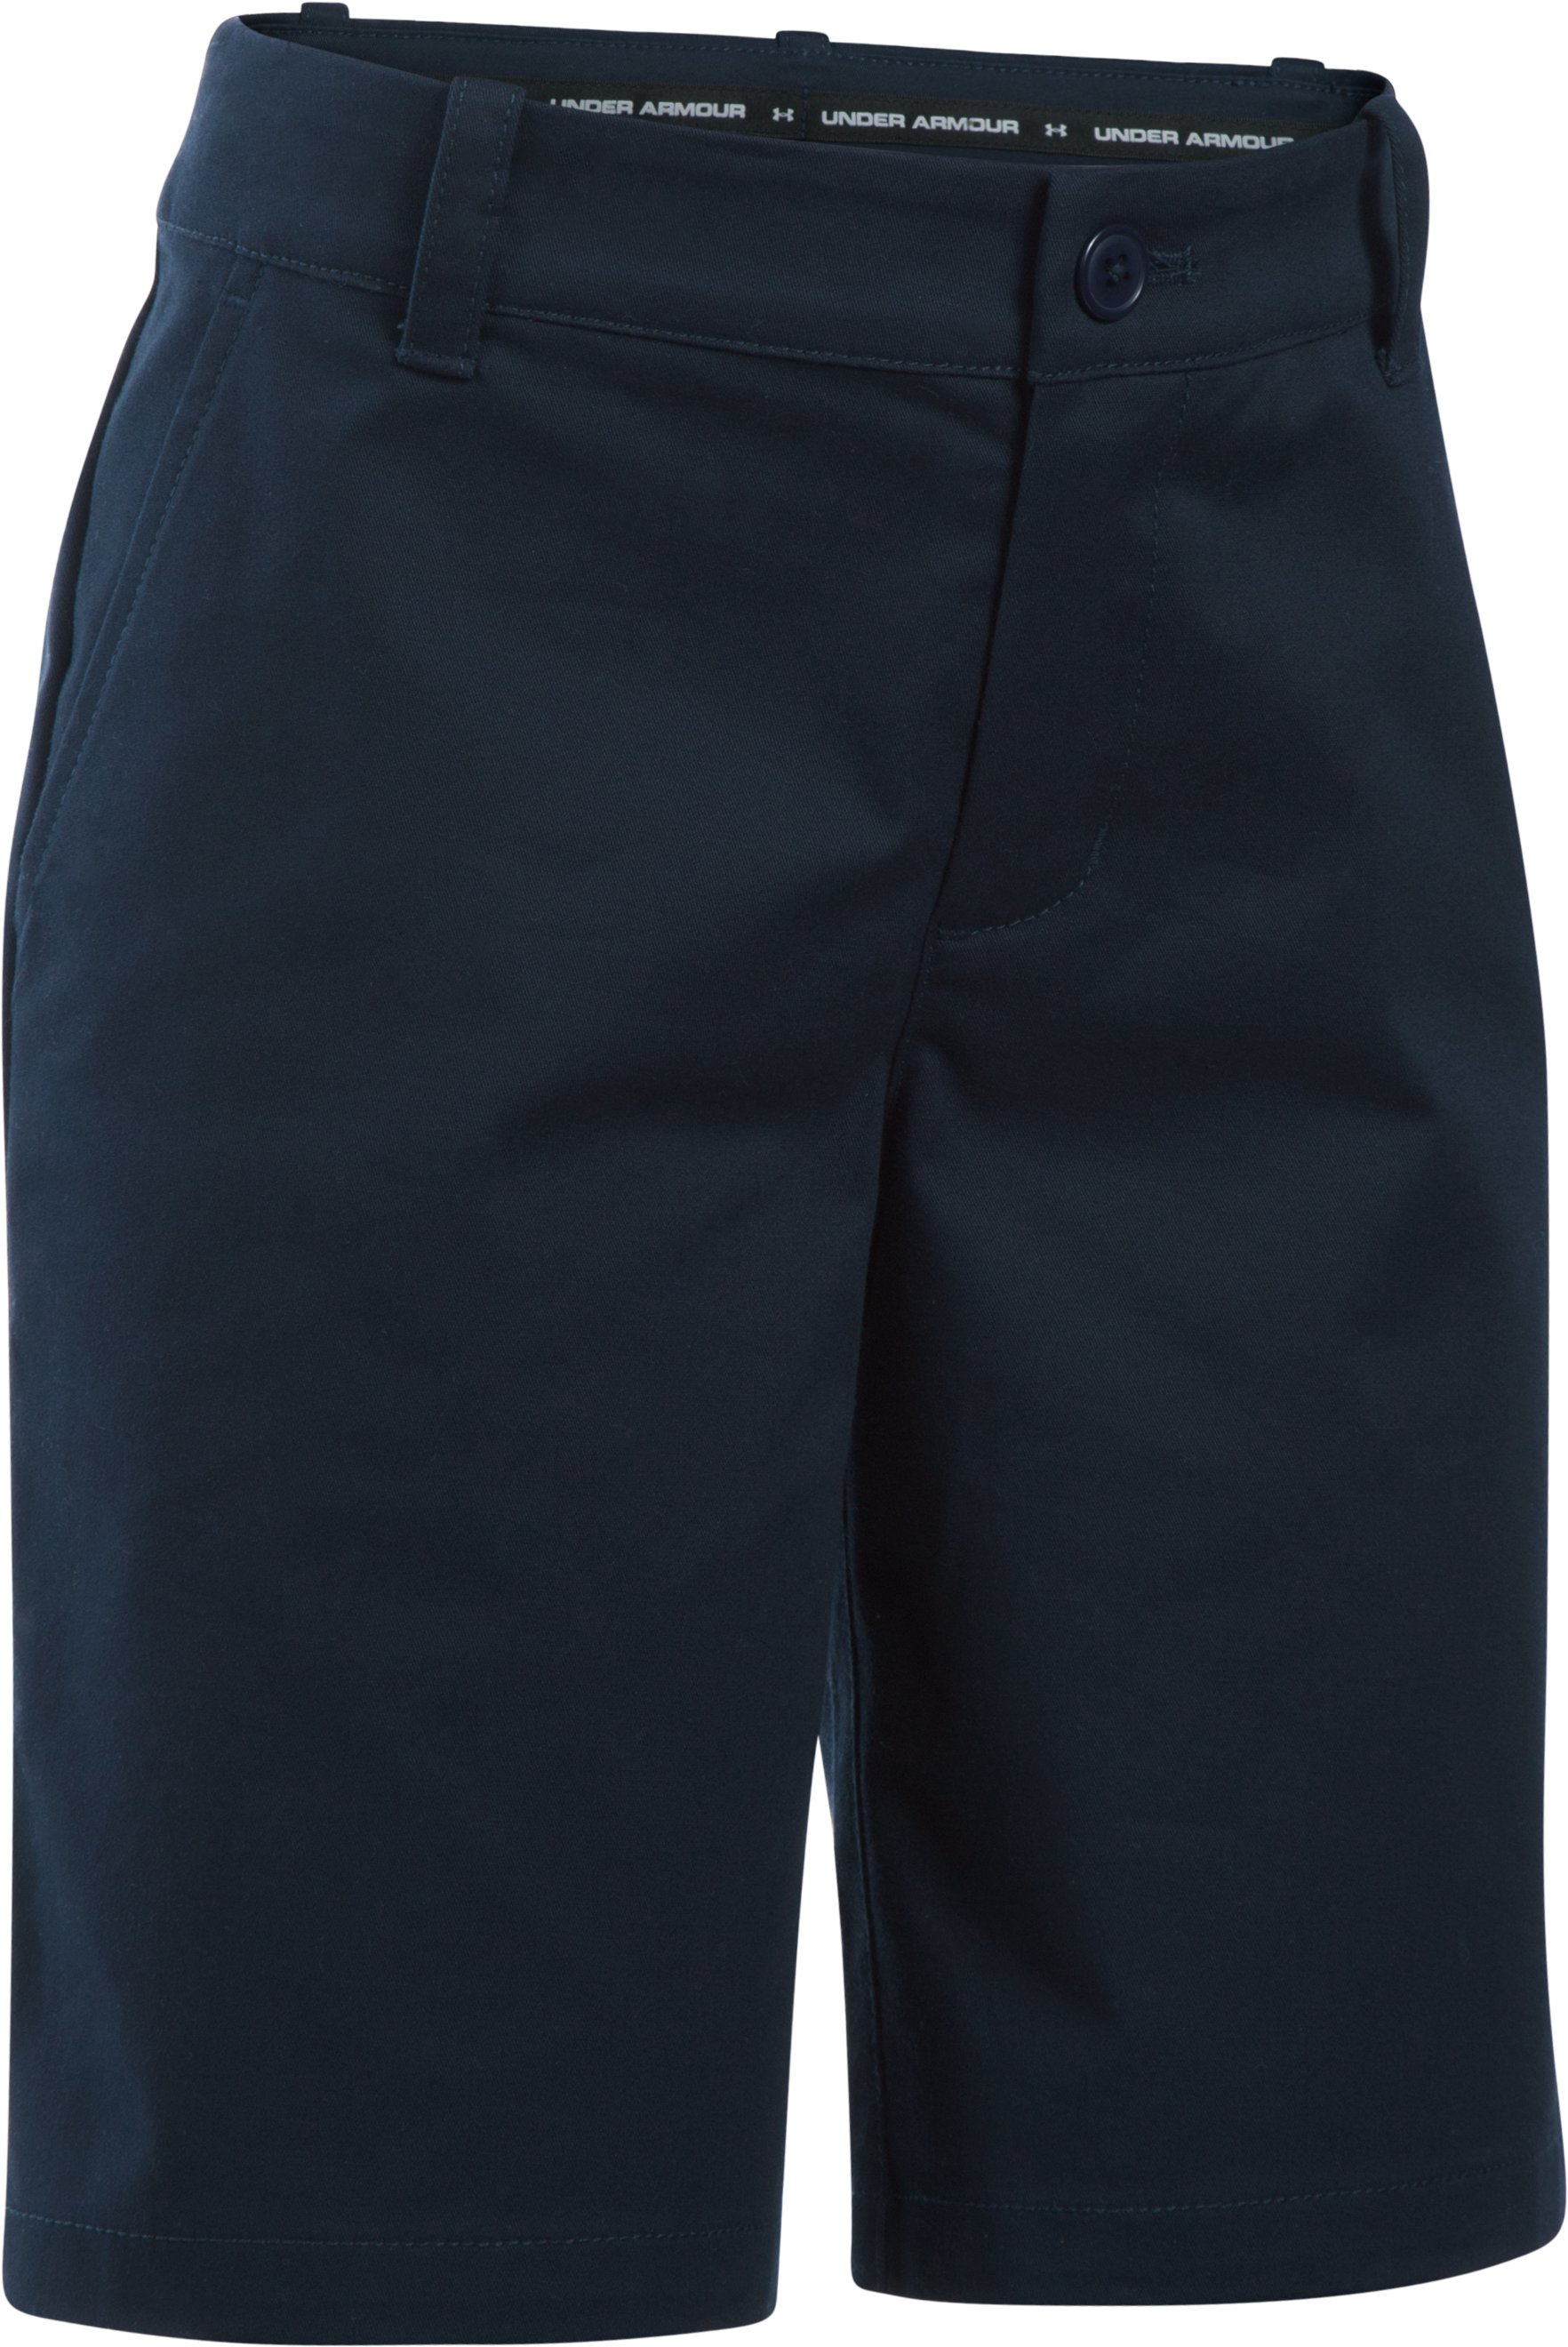 Girls' UA Uniform Chino Shorts, GLORY BLUE